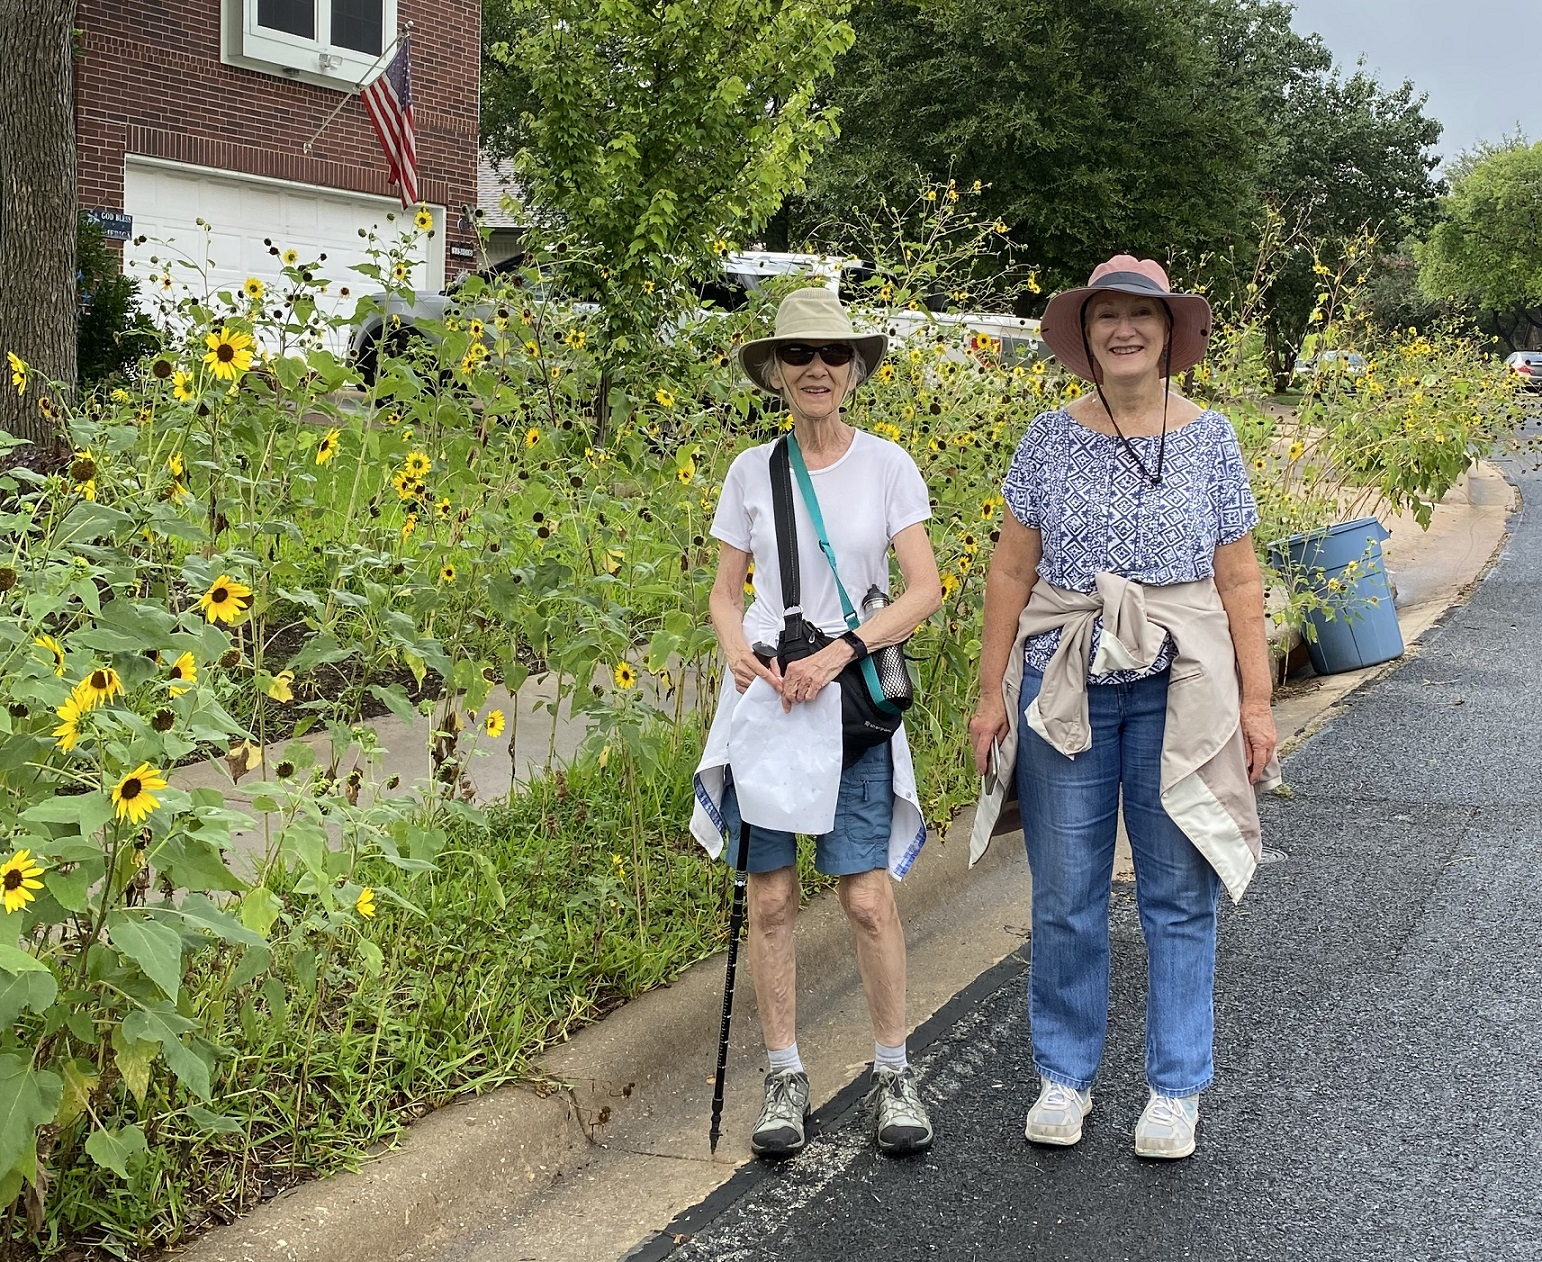 Photos from Violet Crown Exploratory Walk on July 10th